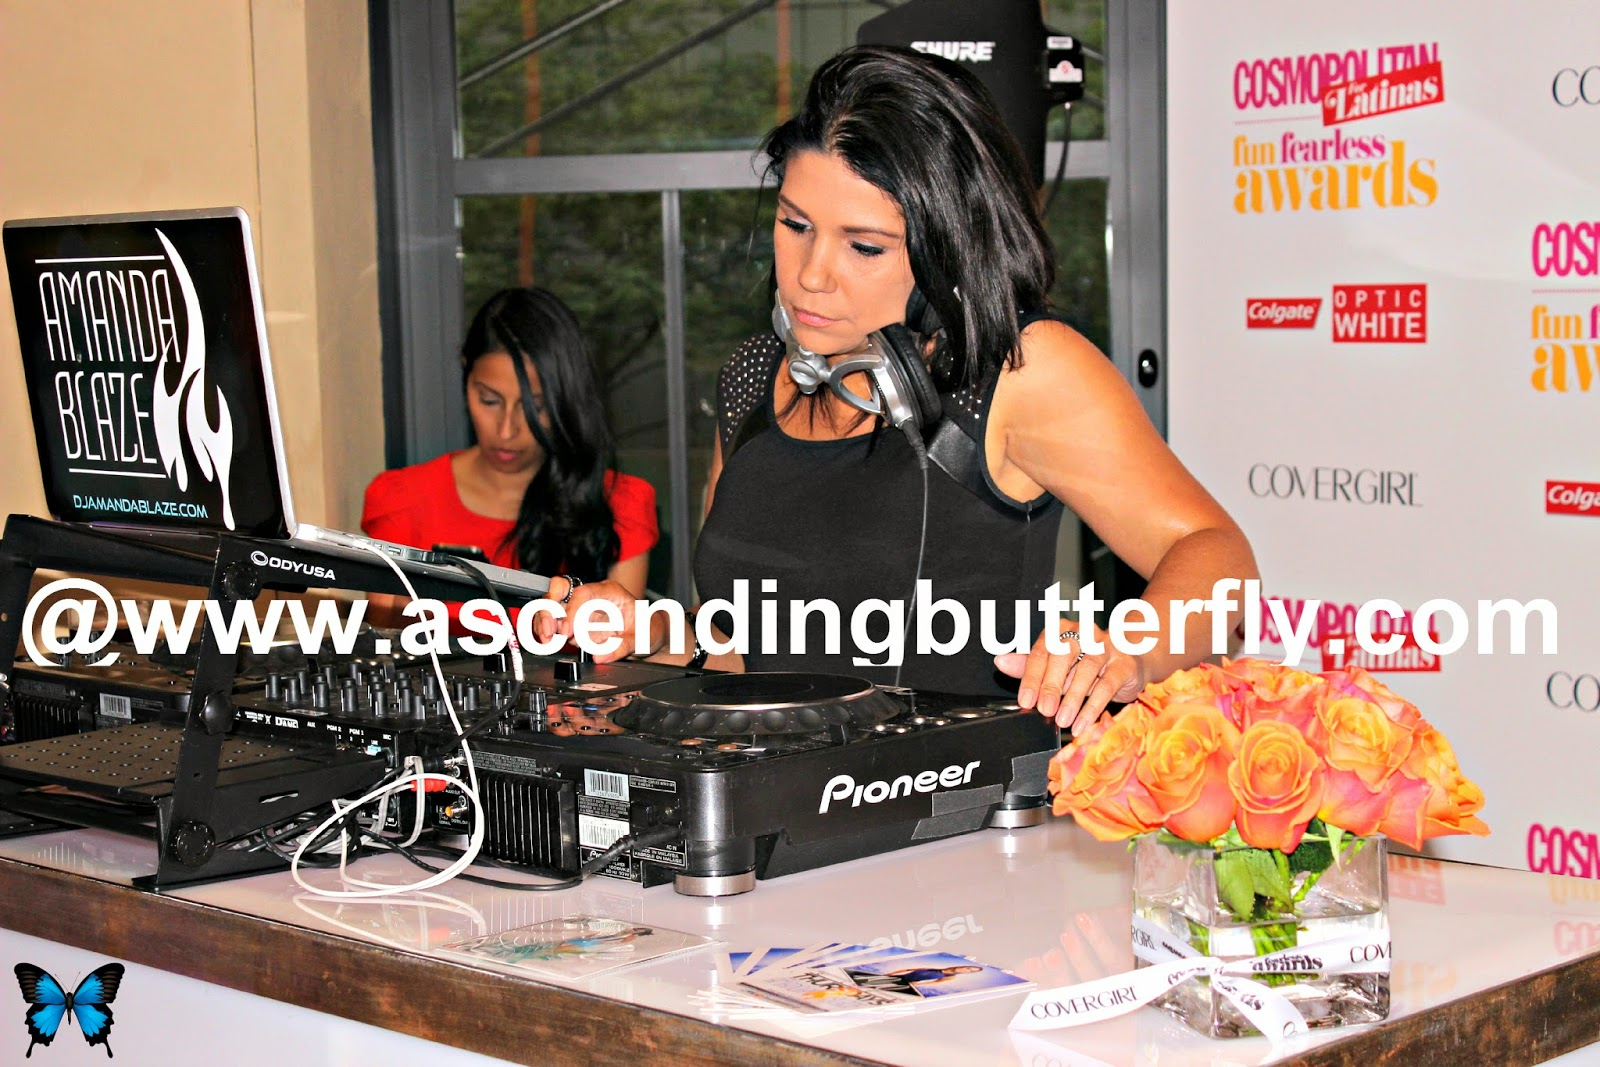 DJ Amanda Blaze spins at Cosmopolitan for Latinas Fun Fearless Awards 2014 in New York City